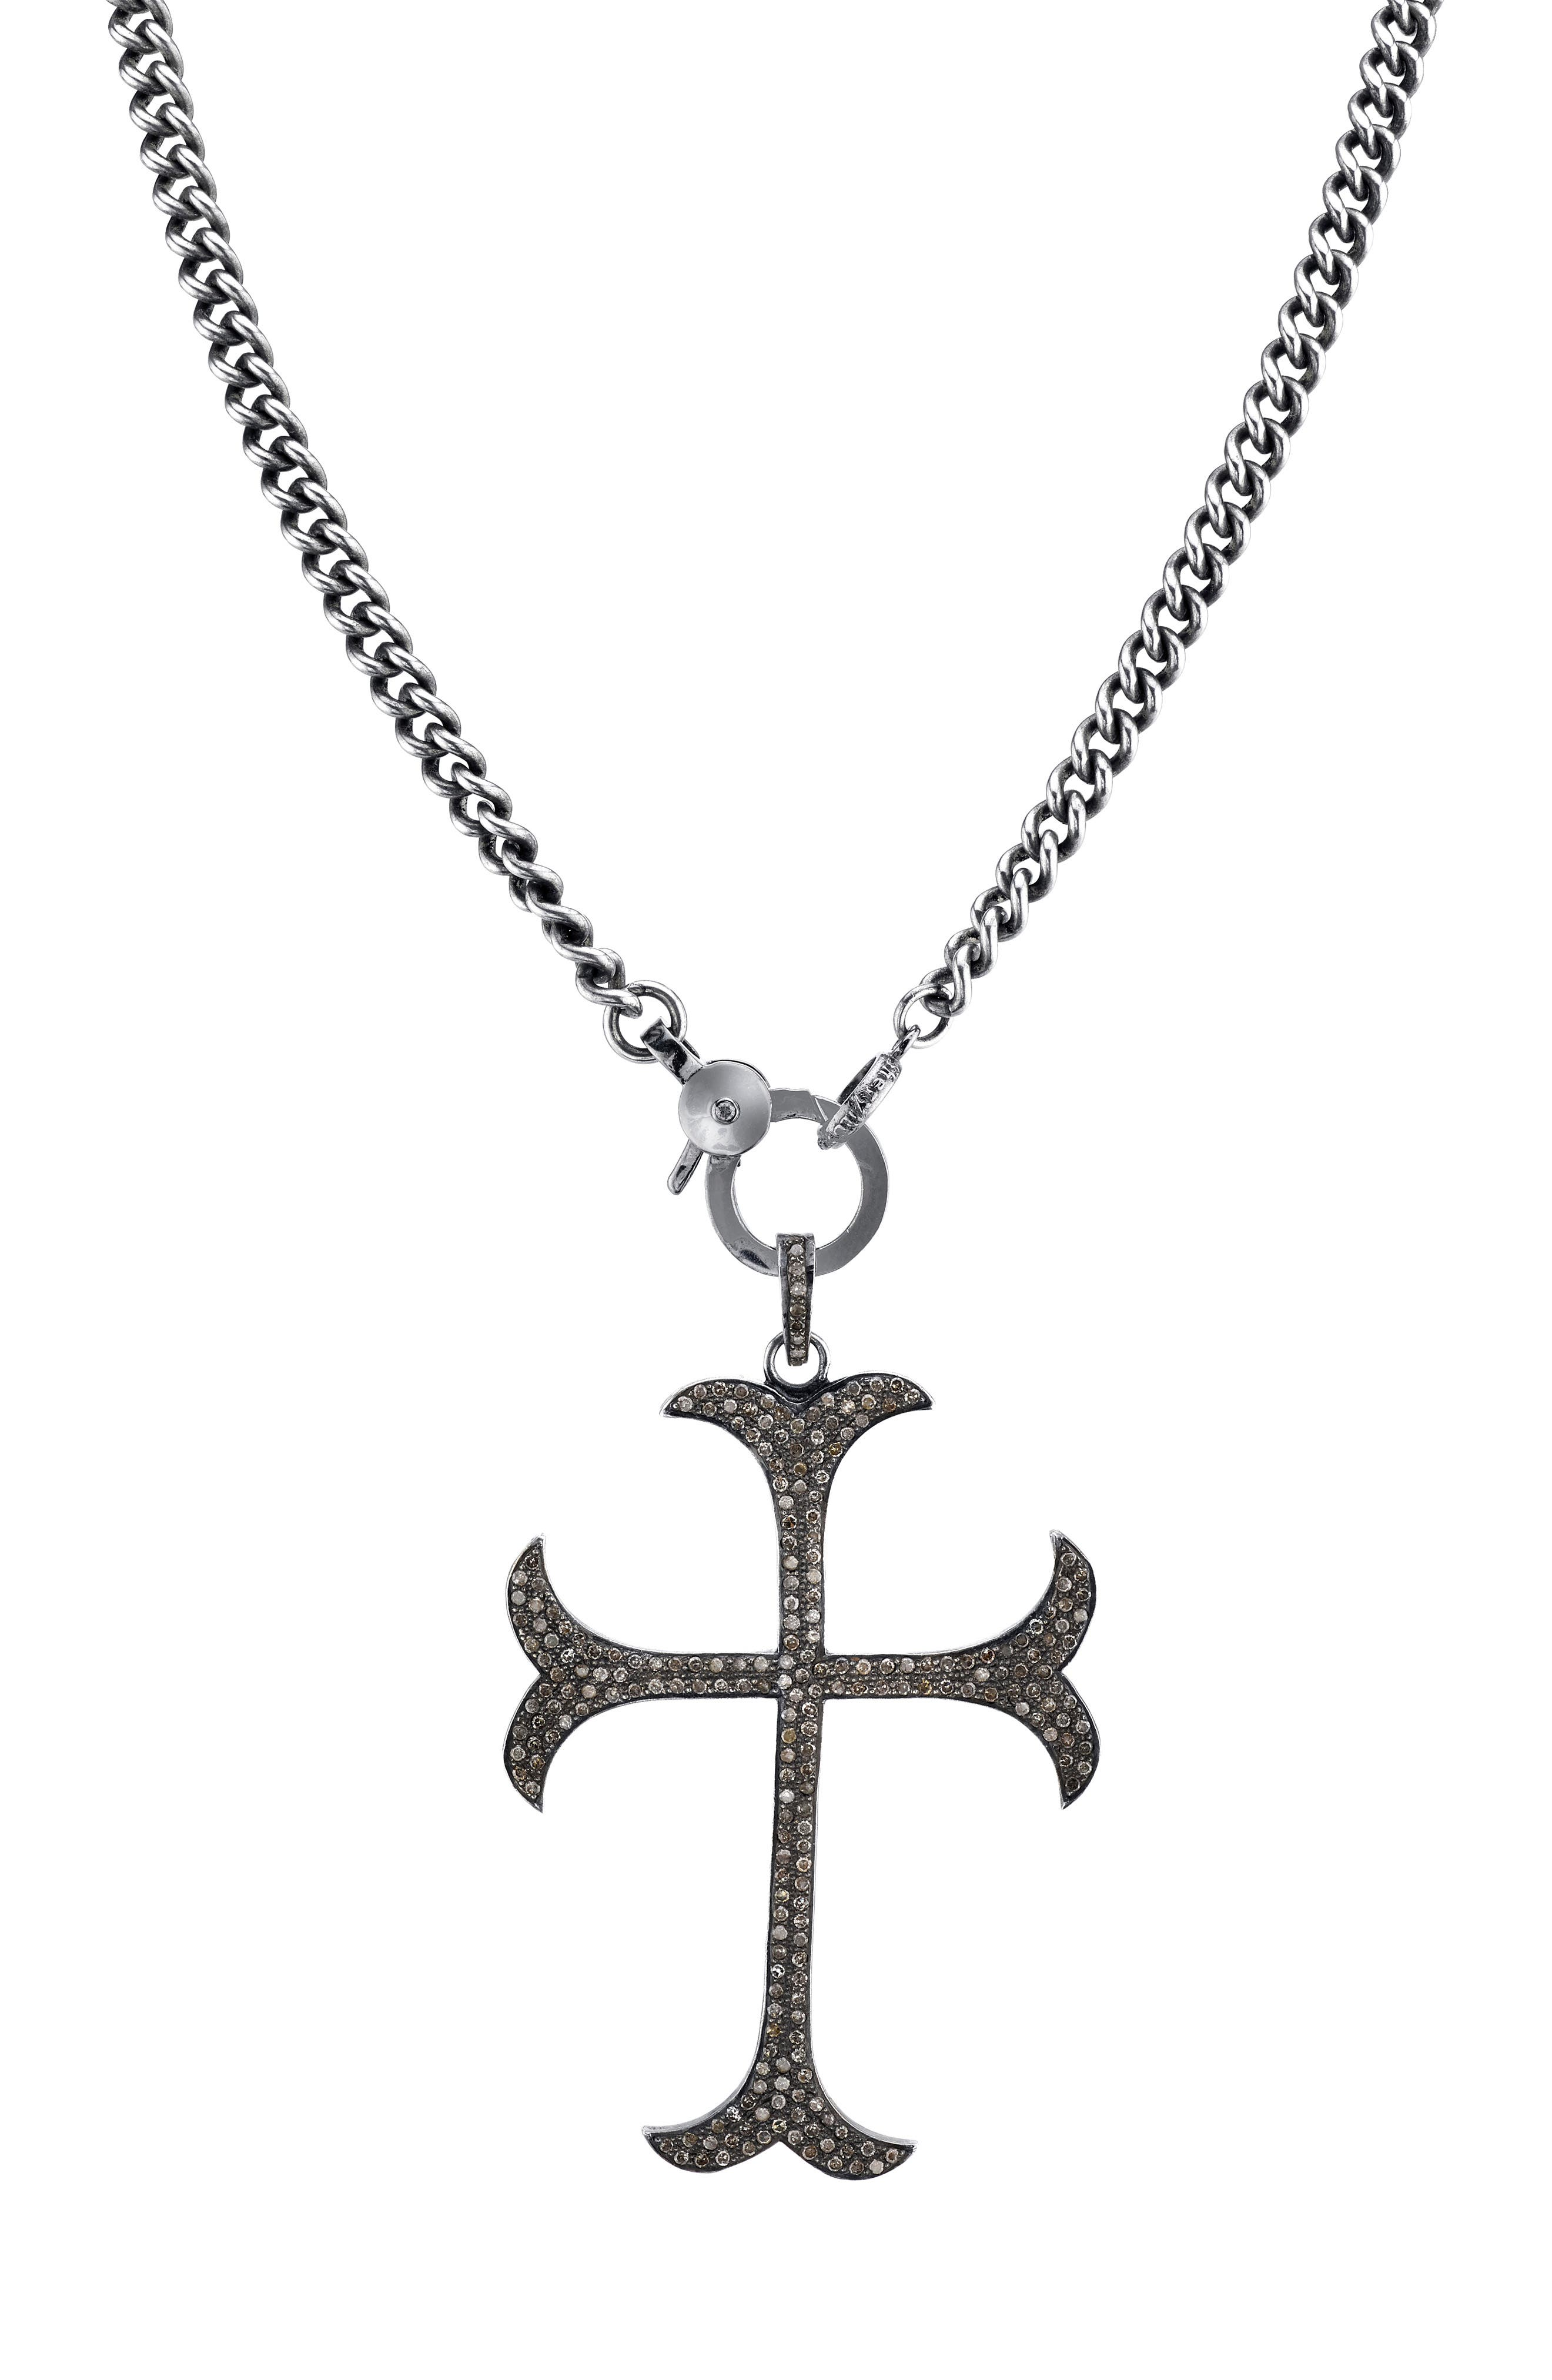 SHERYL LOWE Gothic Cross Diamond Pendant Necklace in Sterling Silver